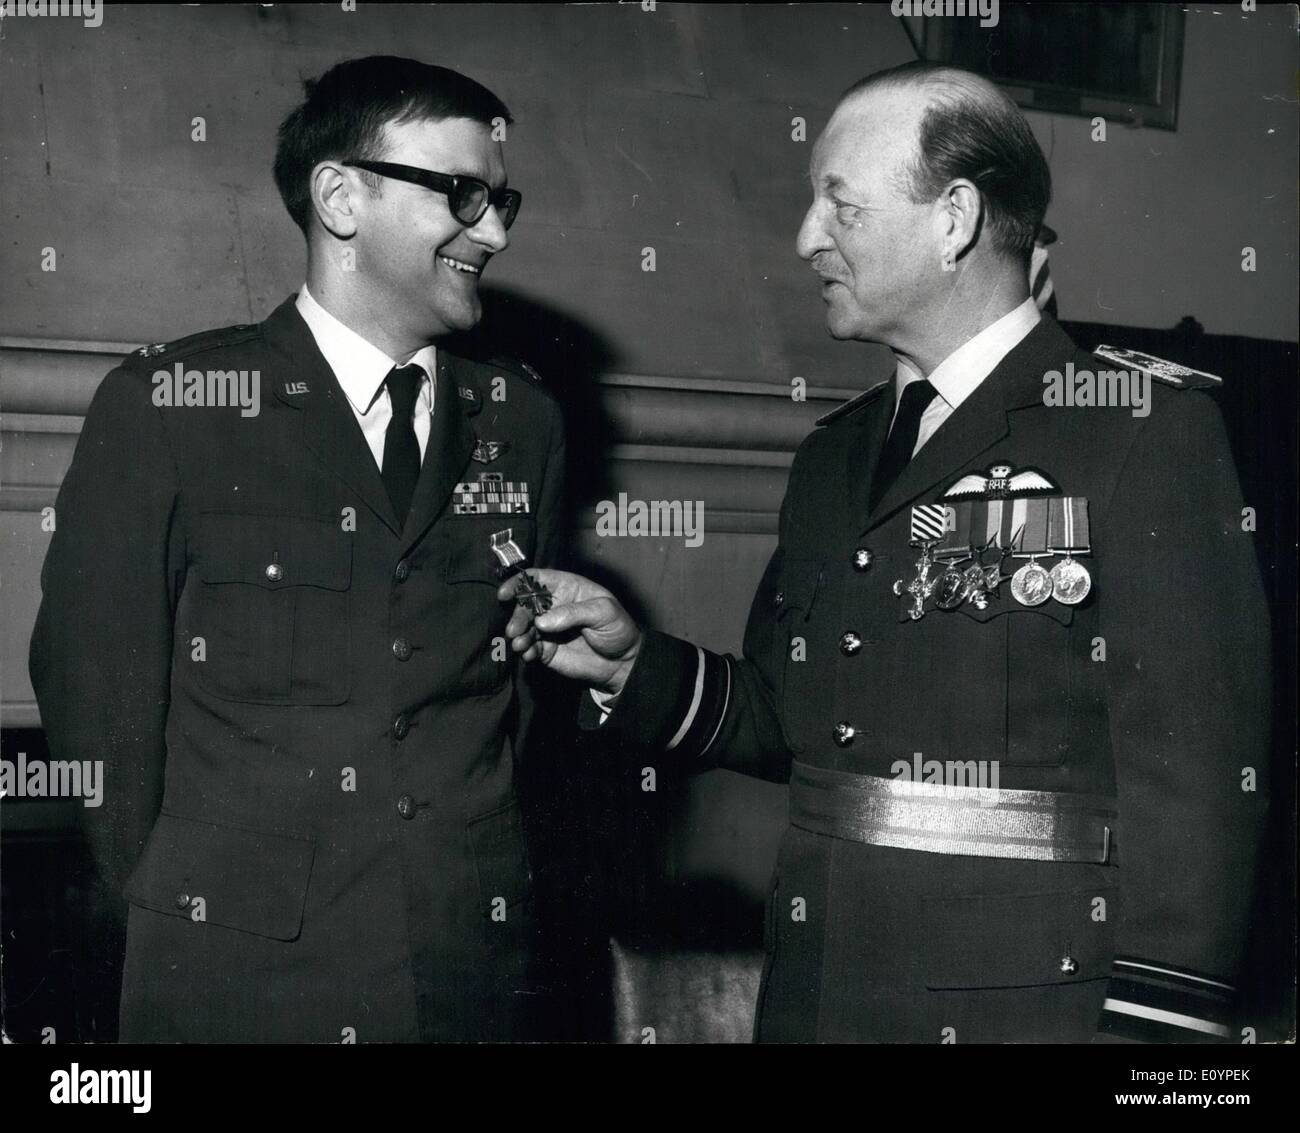 Feb. 03, 1971 - February 3rd, 1971 American D.F.C. presentation. Photo Shows: Air Vice Marshal L.H. Moulton, Air Officer Commanding 90 (Signals) Group, Medmenham, Bucks, presenting the American D.F.C. at the R.A.F. station yesterday, to Major James G. Jones, 36, USAF, for services as an electronic warfare officer in Vietnam. Major Jones is at present an exchange officer at Medmenham. - Stock Image